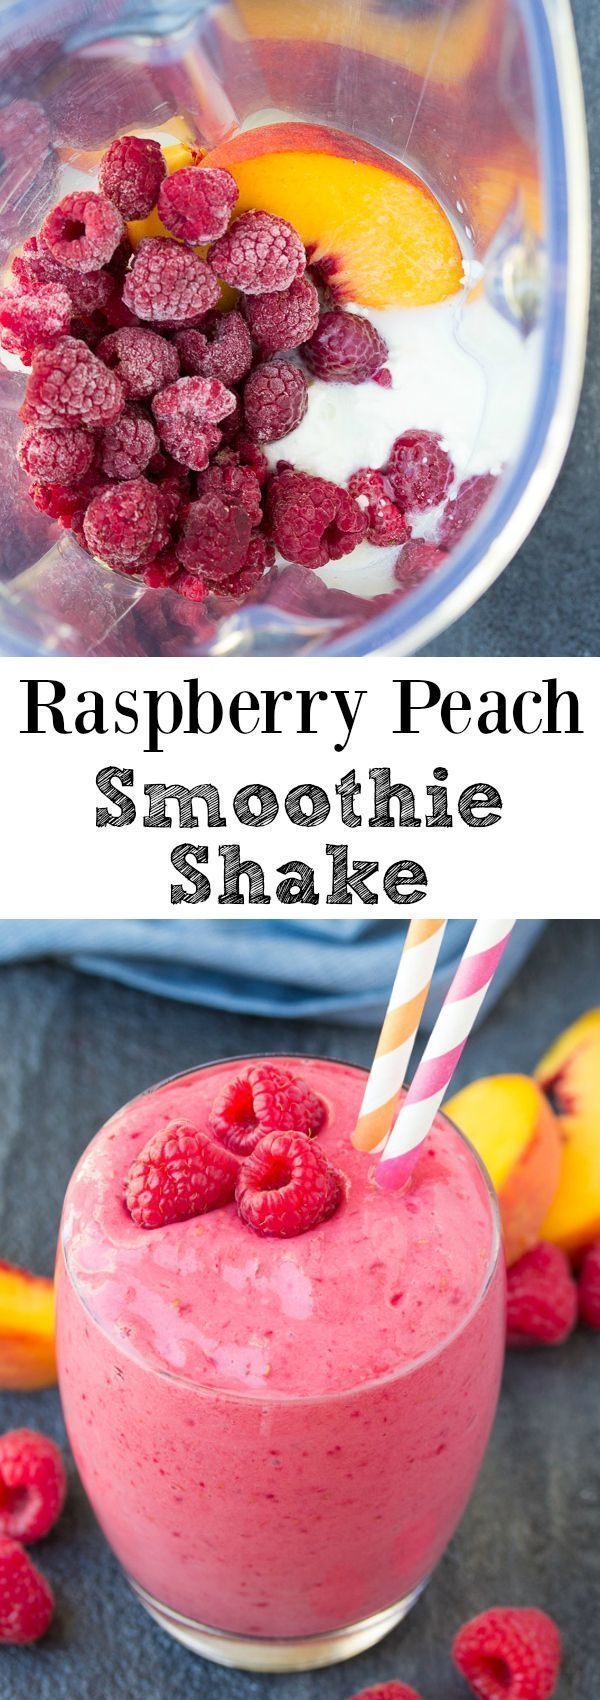 This Raspberry Peach Smoothie Shake is full of fresh raspberry flavor! With just a few ingredients, this vibrant smoothie is quick and easy to make! | www.kristineskitc... #ad